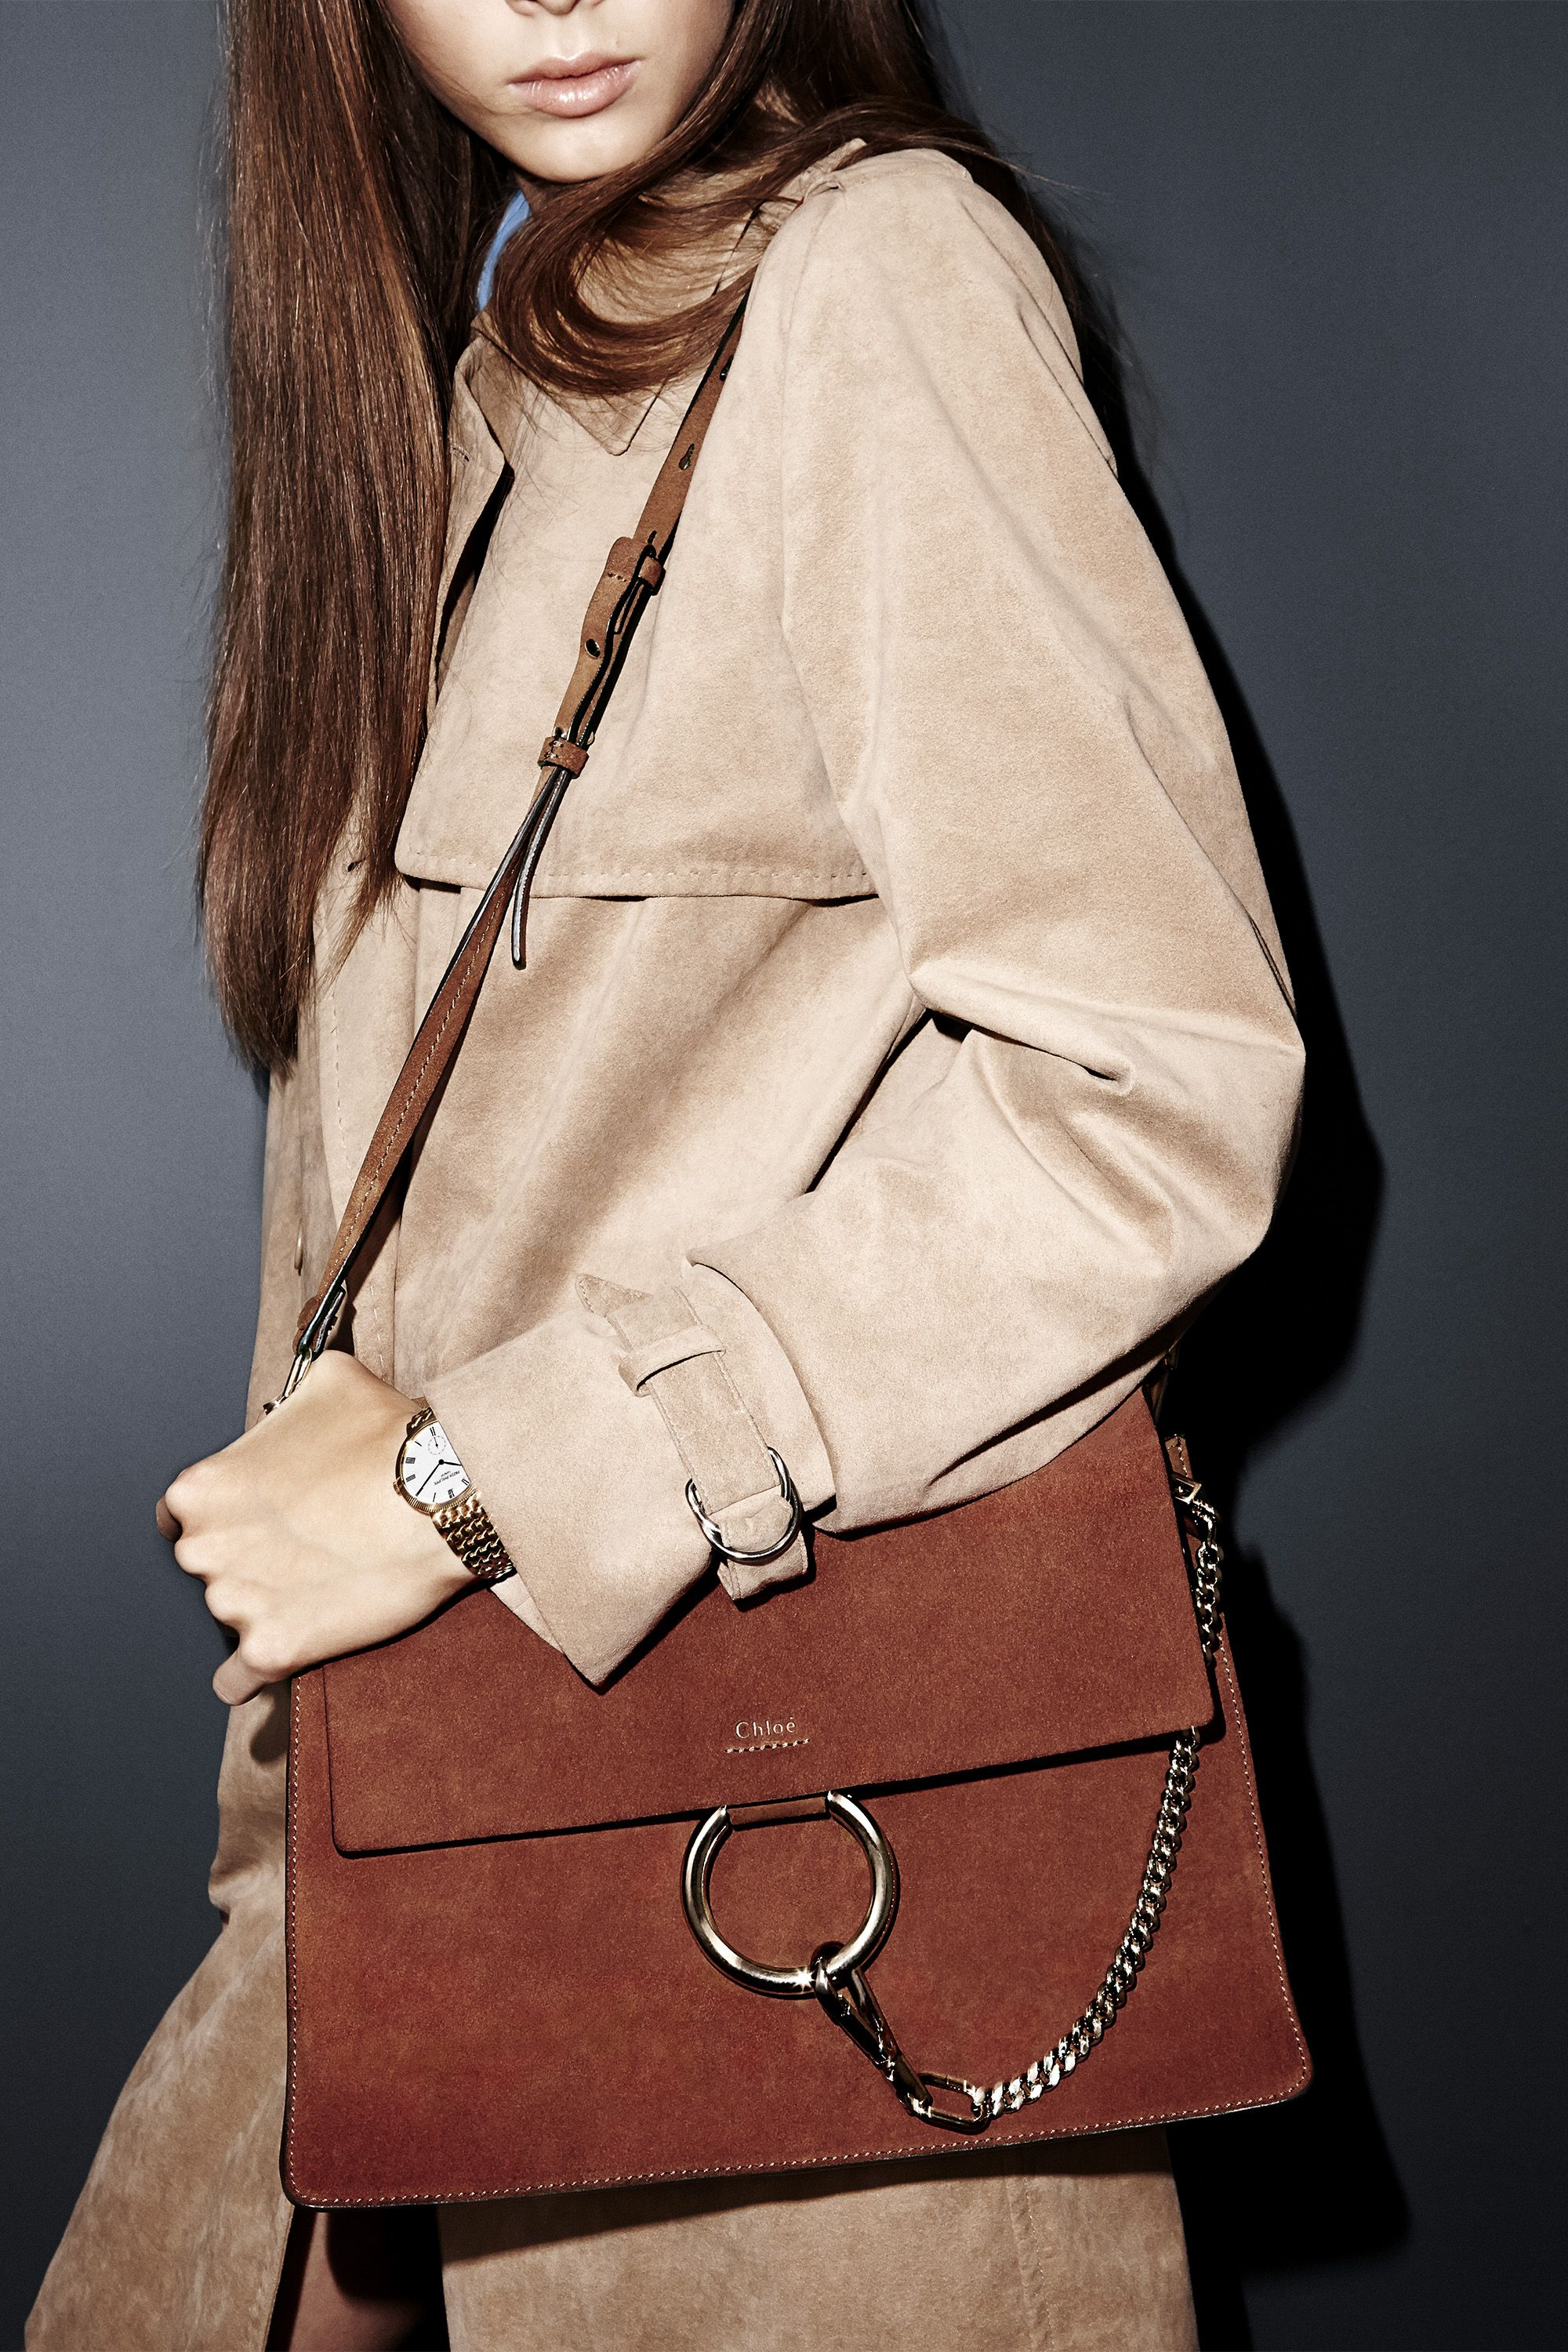 "A coat for all seasons finds a friend in suede while well-placed hardware punches up this structured accessory.  <strong>Max Mara</strong> coat, $1,890, 212-879-6100; <strong>Chloé </strong>bag, $1,920, <a href=""http://shop.harpersbazaar.com/designers/chloe/medium-faye-shoulder-bag/"">shopBAZAAR.com</a>; <strong>Patek Philippe </strong>watch, $38,800, 212-218-1240."